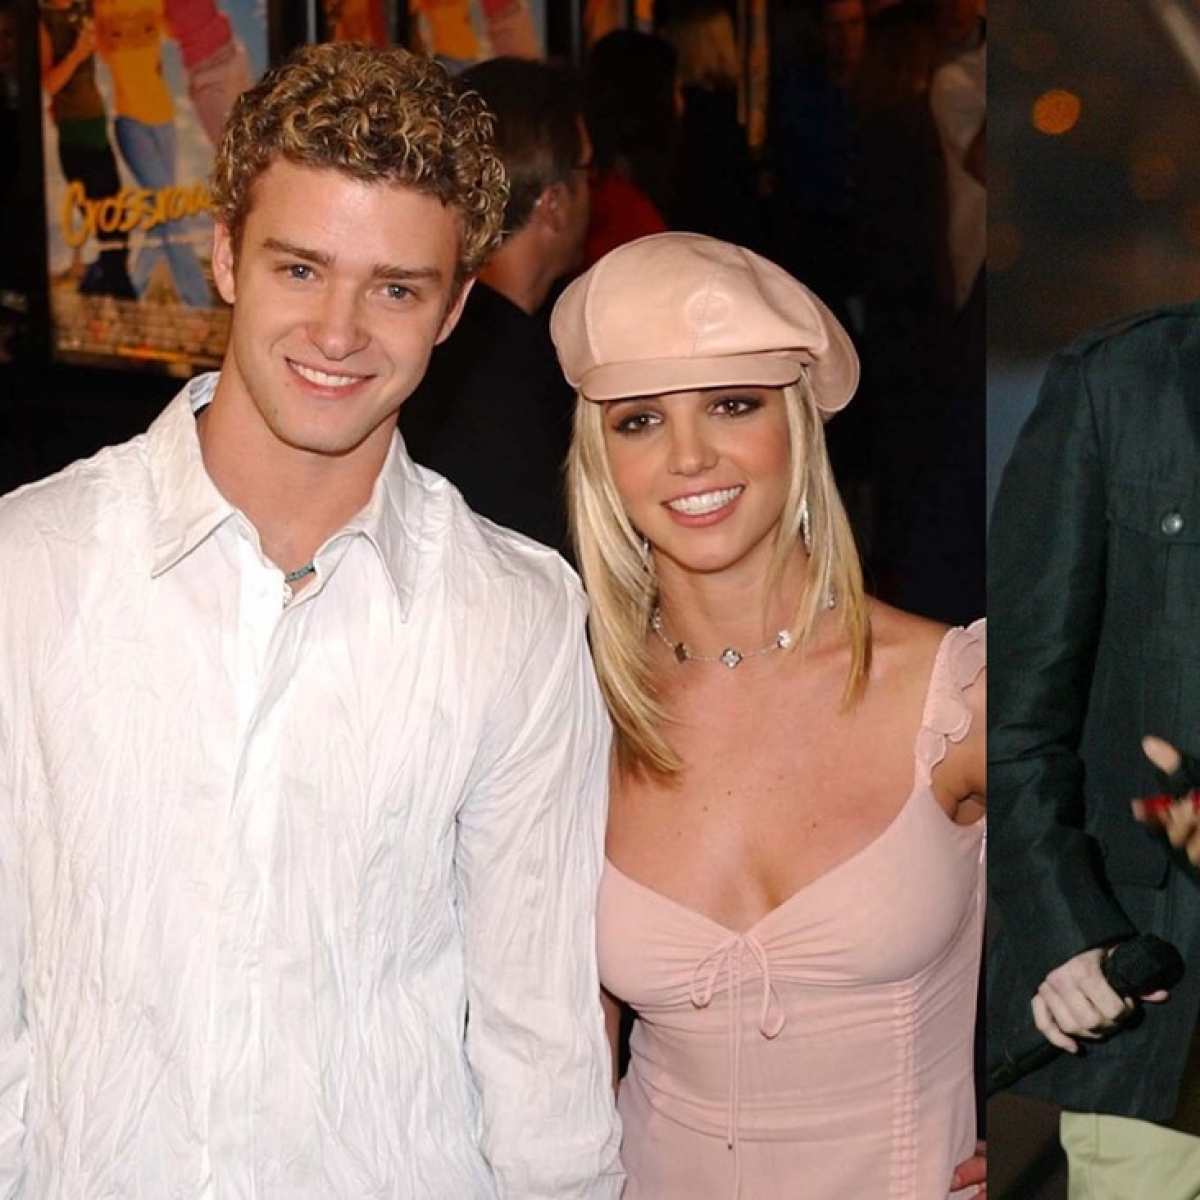 'I failed': Justin Timberlake apologises to ex-GF Britney Spears and singer Janet Jackson